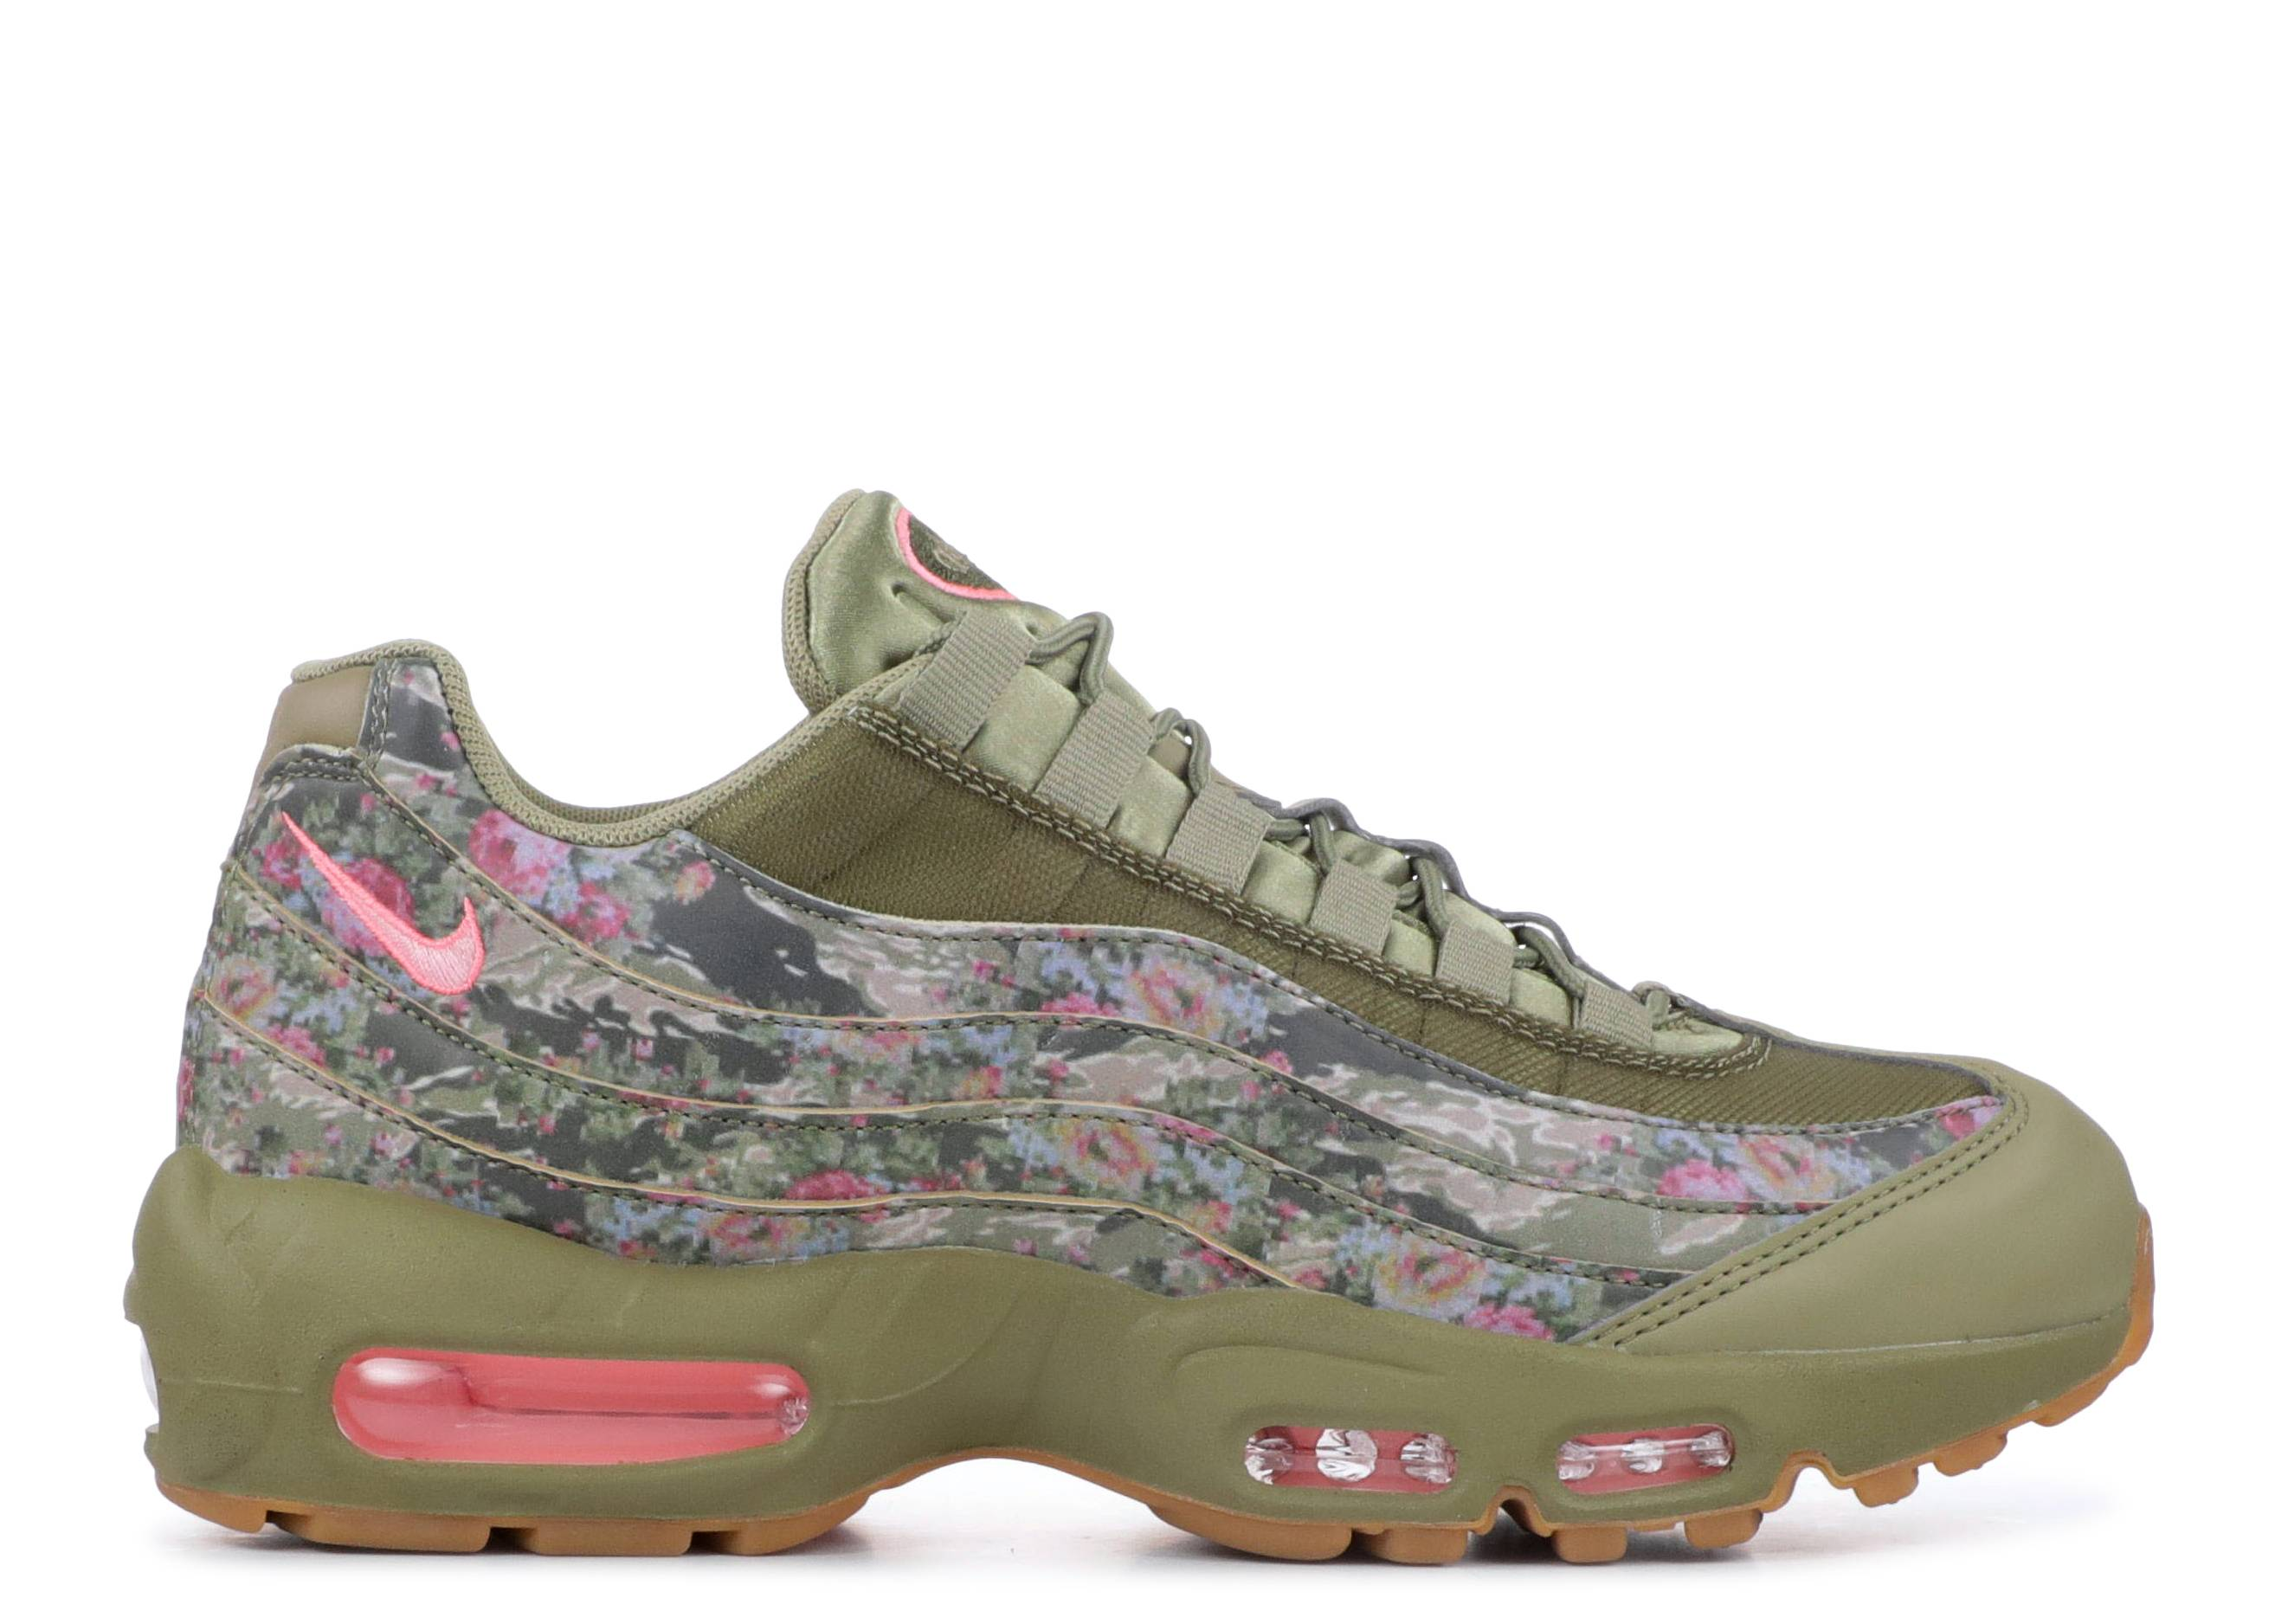 7ea5f23010003a W Air Max 95 - Nike - AQ6385 200 - neutral olive arctic punch-gum ...